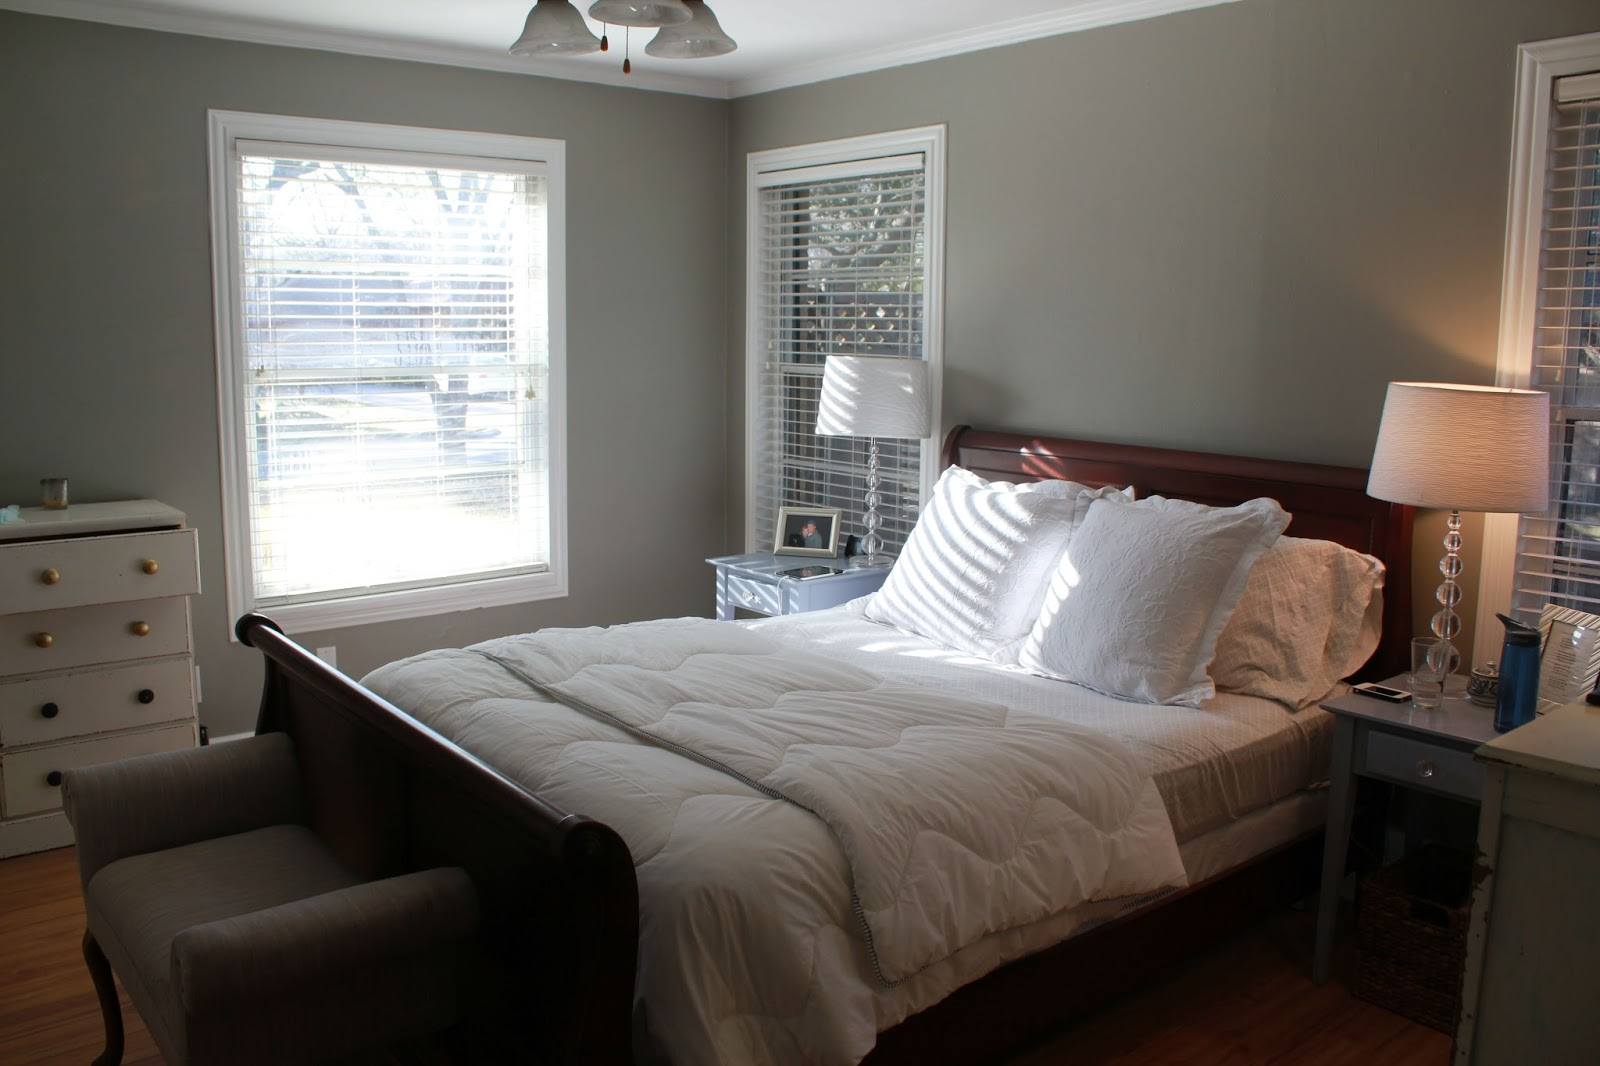 Fresh and fancy pottery barn bedding our master bedroom - Pottery barn master bedroom ideas ...